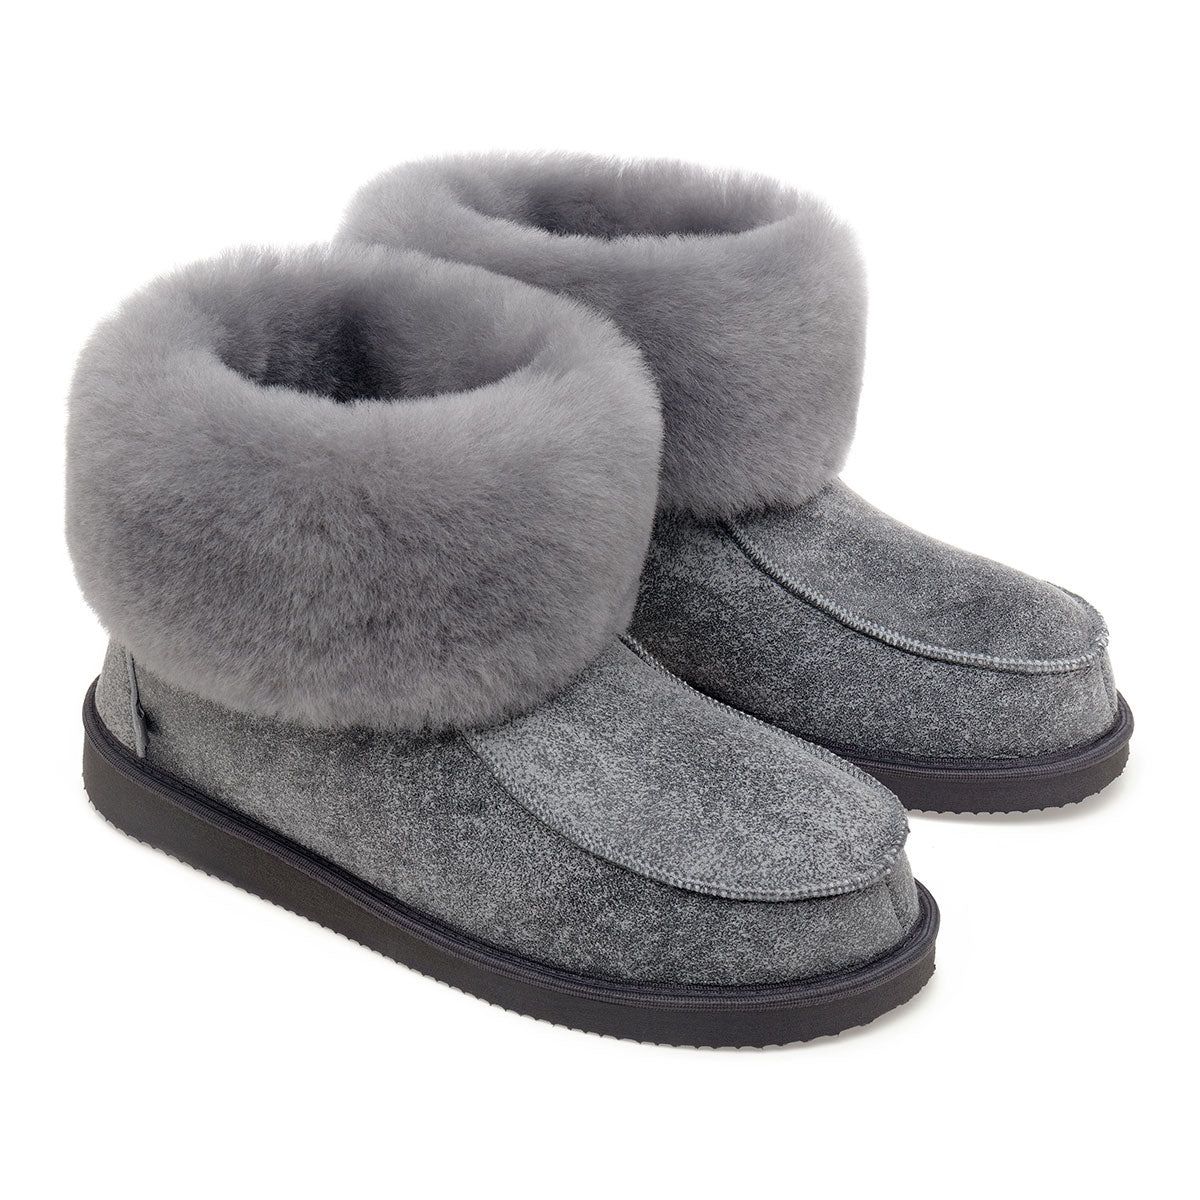 NEW Aesop Sheepskin Slippers - Grey Distressed Leather